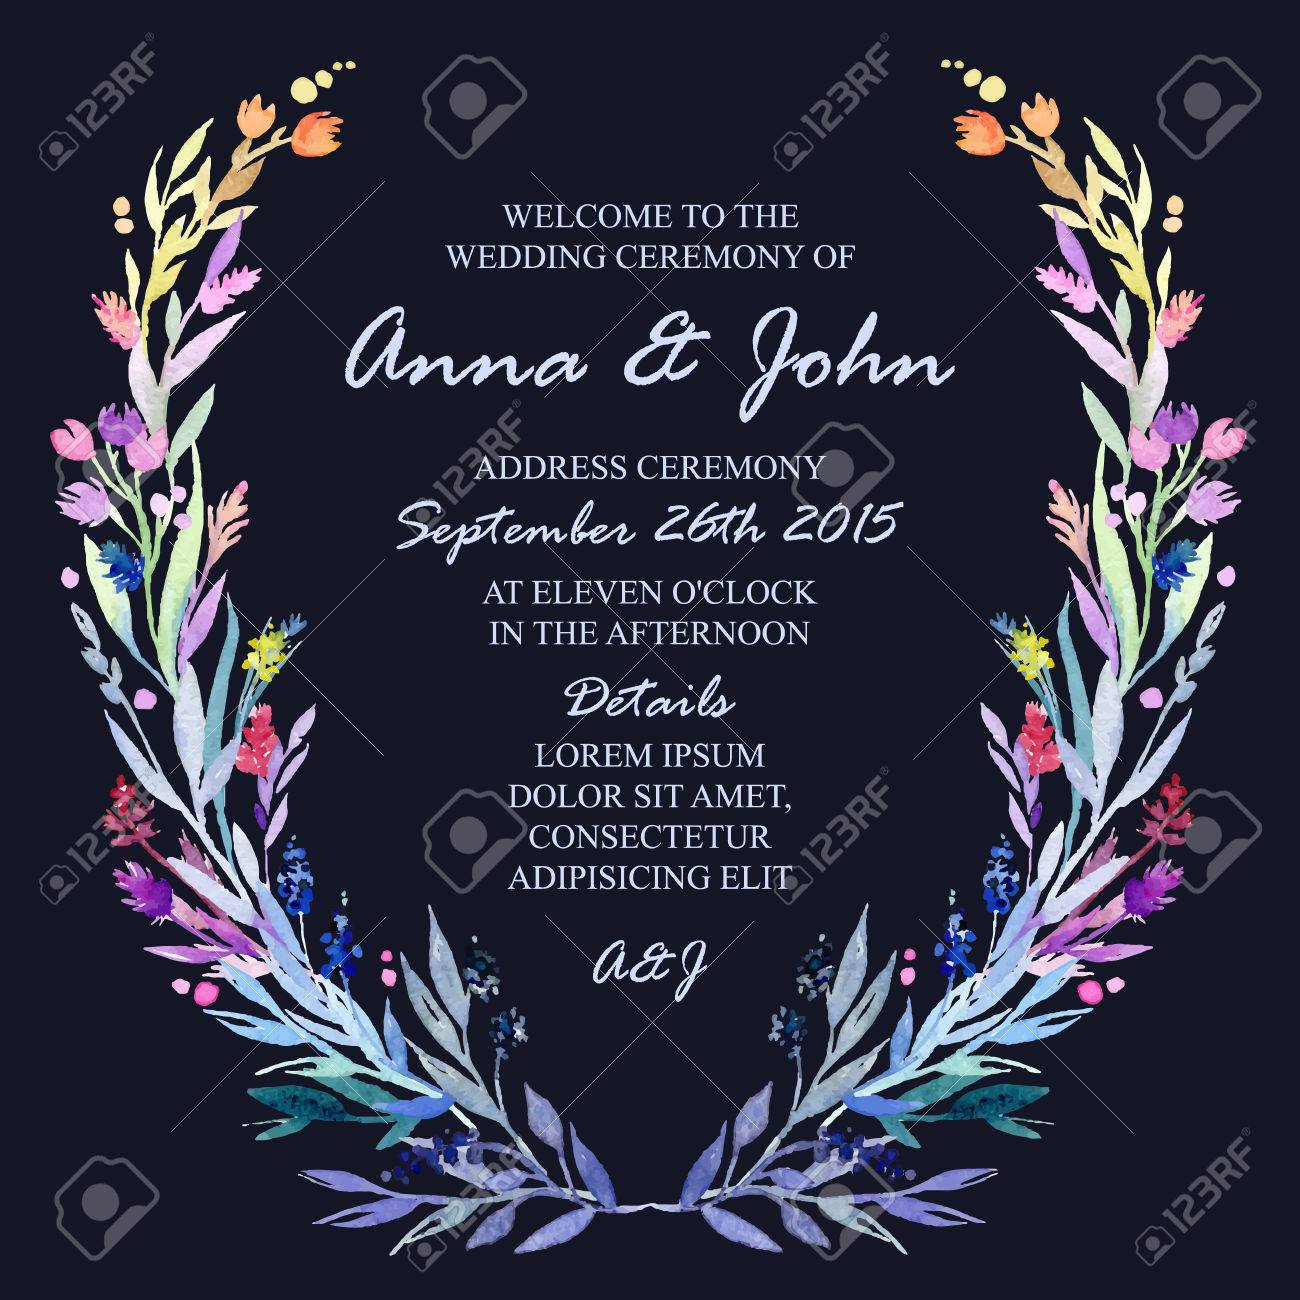 Wedding invitation design template with watercolor floral frame vector wedding invitation design template with watercolor floral frame vector background for special occasions life events stopboris Choice Image